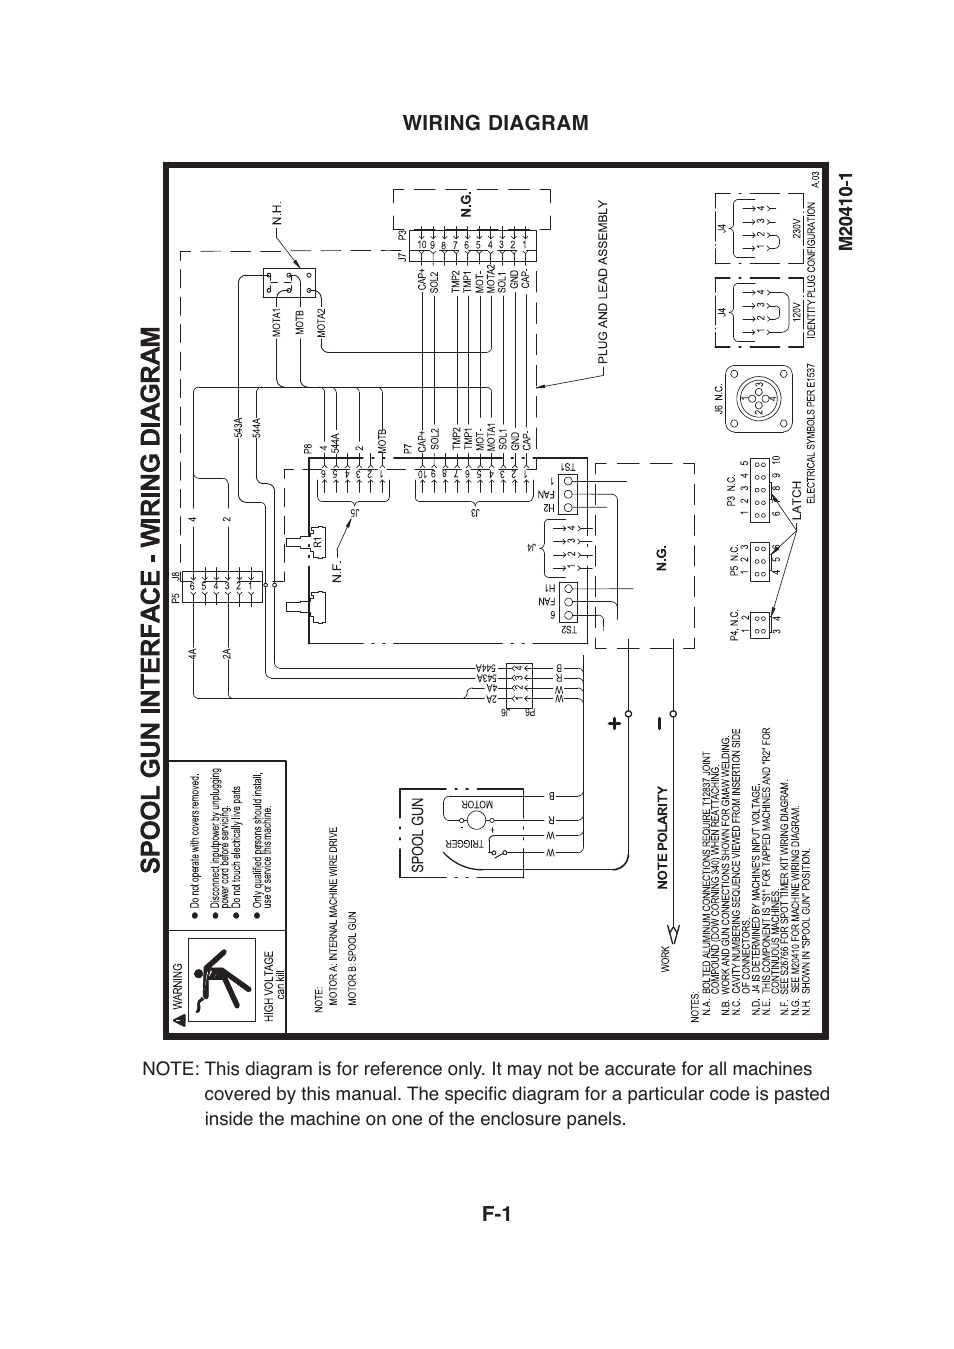 Wiring Diagrams Pdf Wire Residential Electrical Wiring Diagrams Pdf